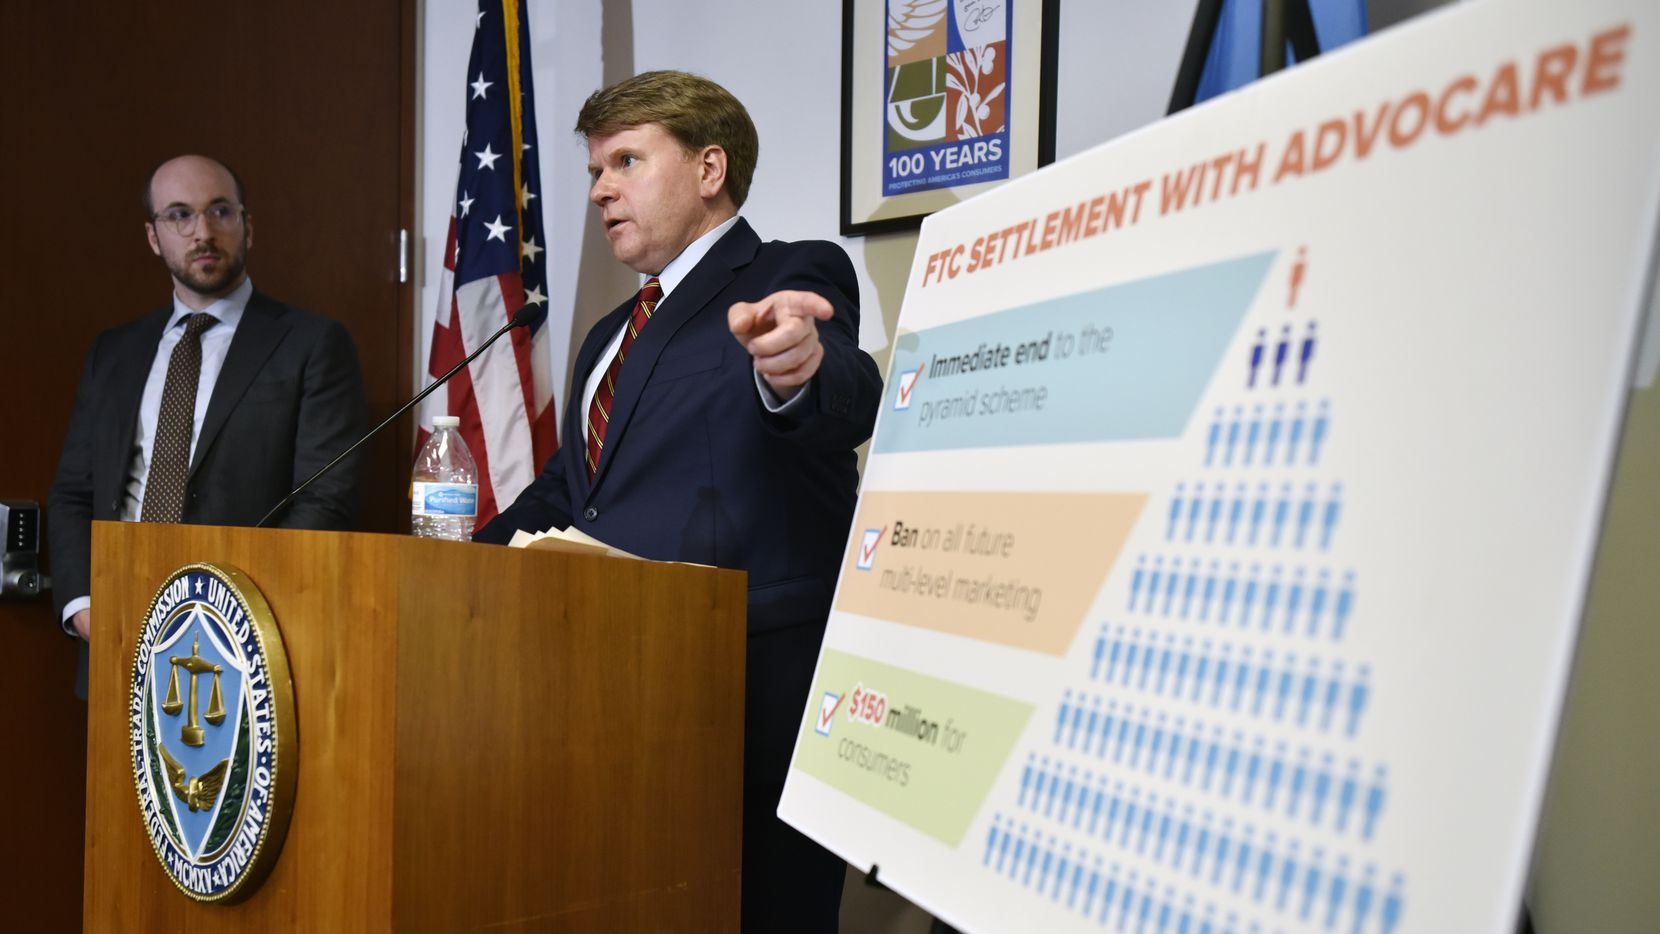 Aaron Haberman, far-left, a Federal Trade Commission attorney, and Andrew Smith, right, consumer protection bureau director for the Federal Trade Commission, speak during a press conference at the FTC regional office in Dallas, Wednesday morning Oct. 2, 2019. The FTC announced that AdvoCare, a dietary supplement company, will pay a $150 million fine for operating an illegal pyramid scheme. Ben Torres/Special Contributor